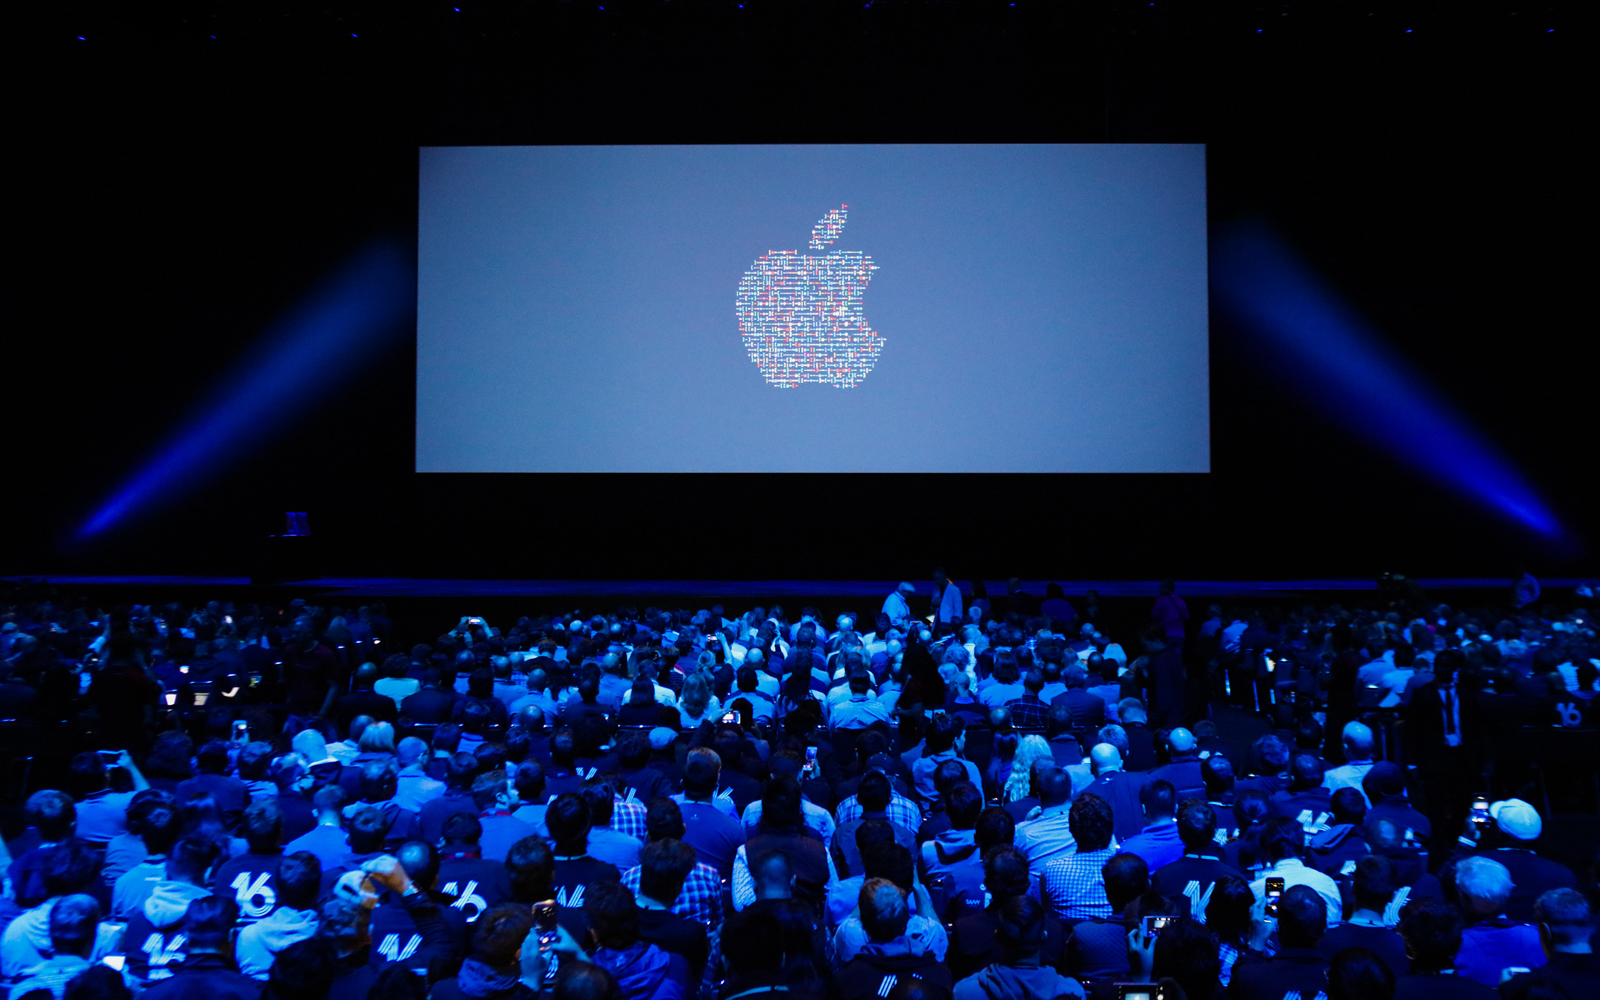 Apple Announces WWDC 2017 Dates and Location